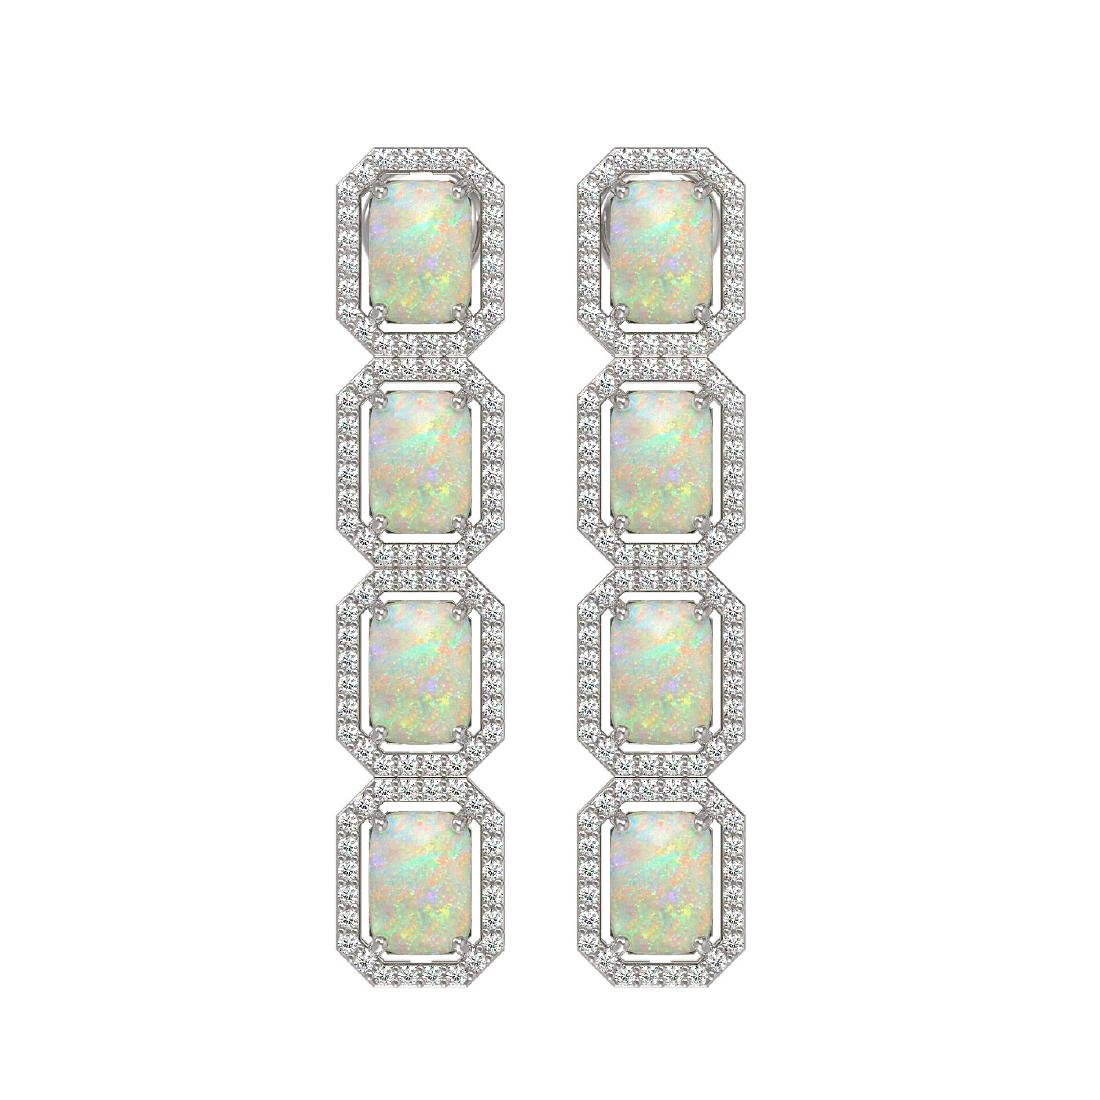 7.93 CTW Opal & Diamond Halo Earrings 10K White Gold